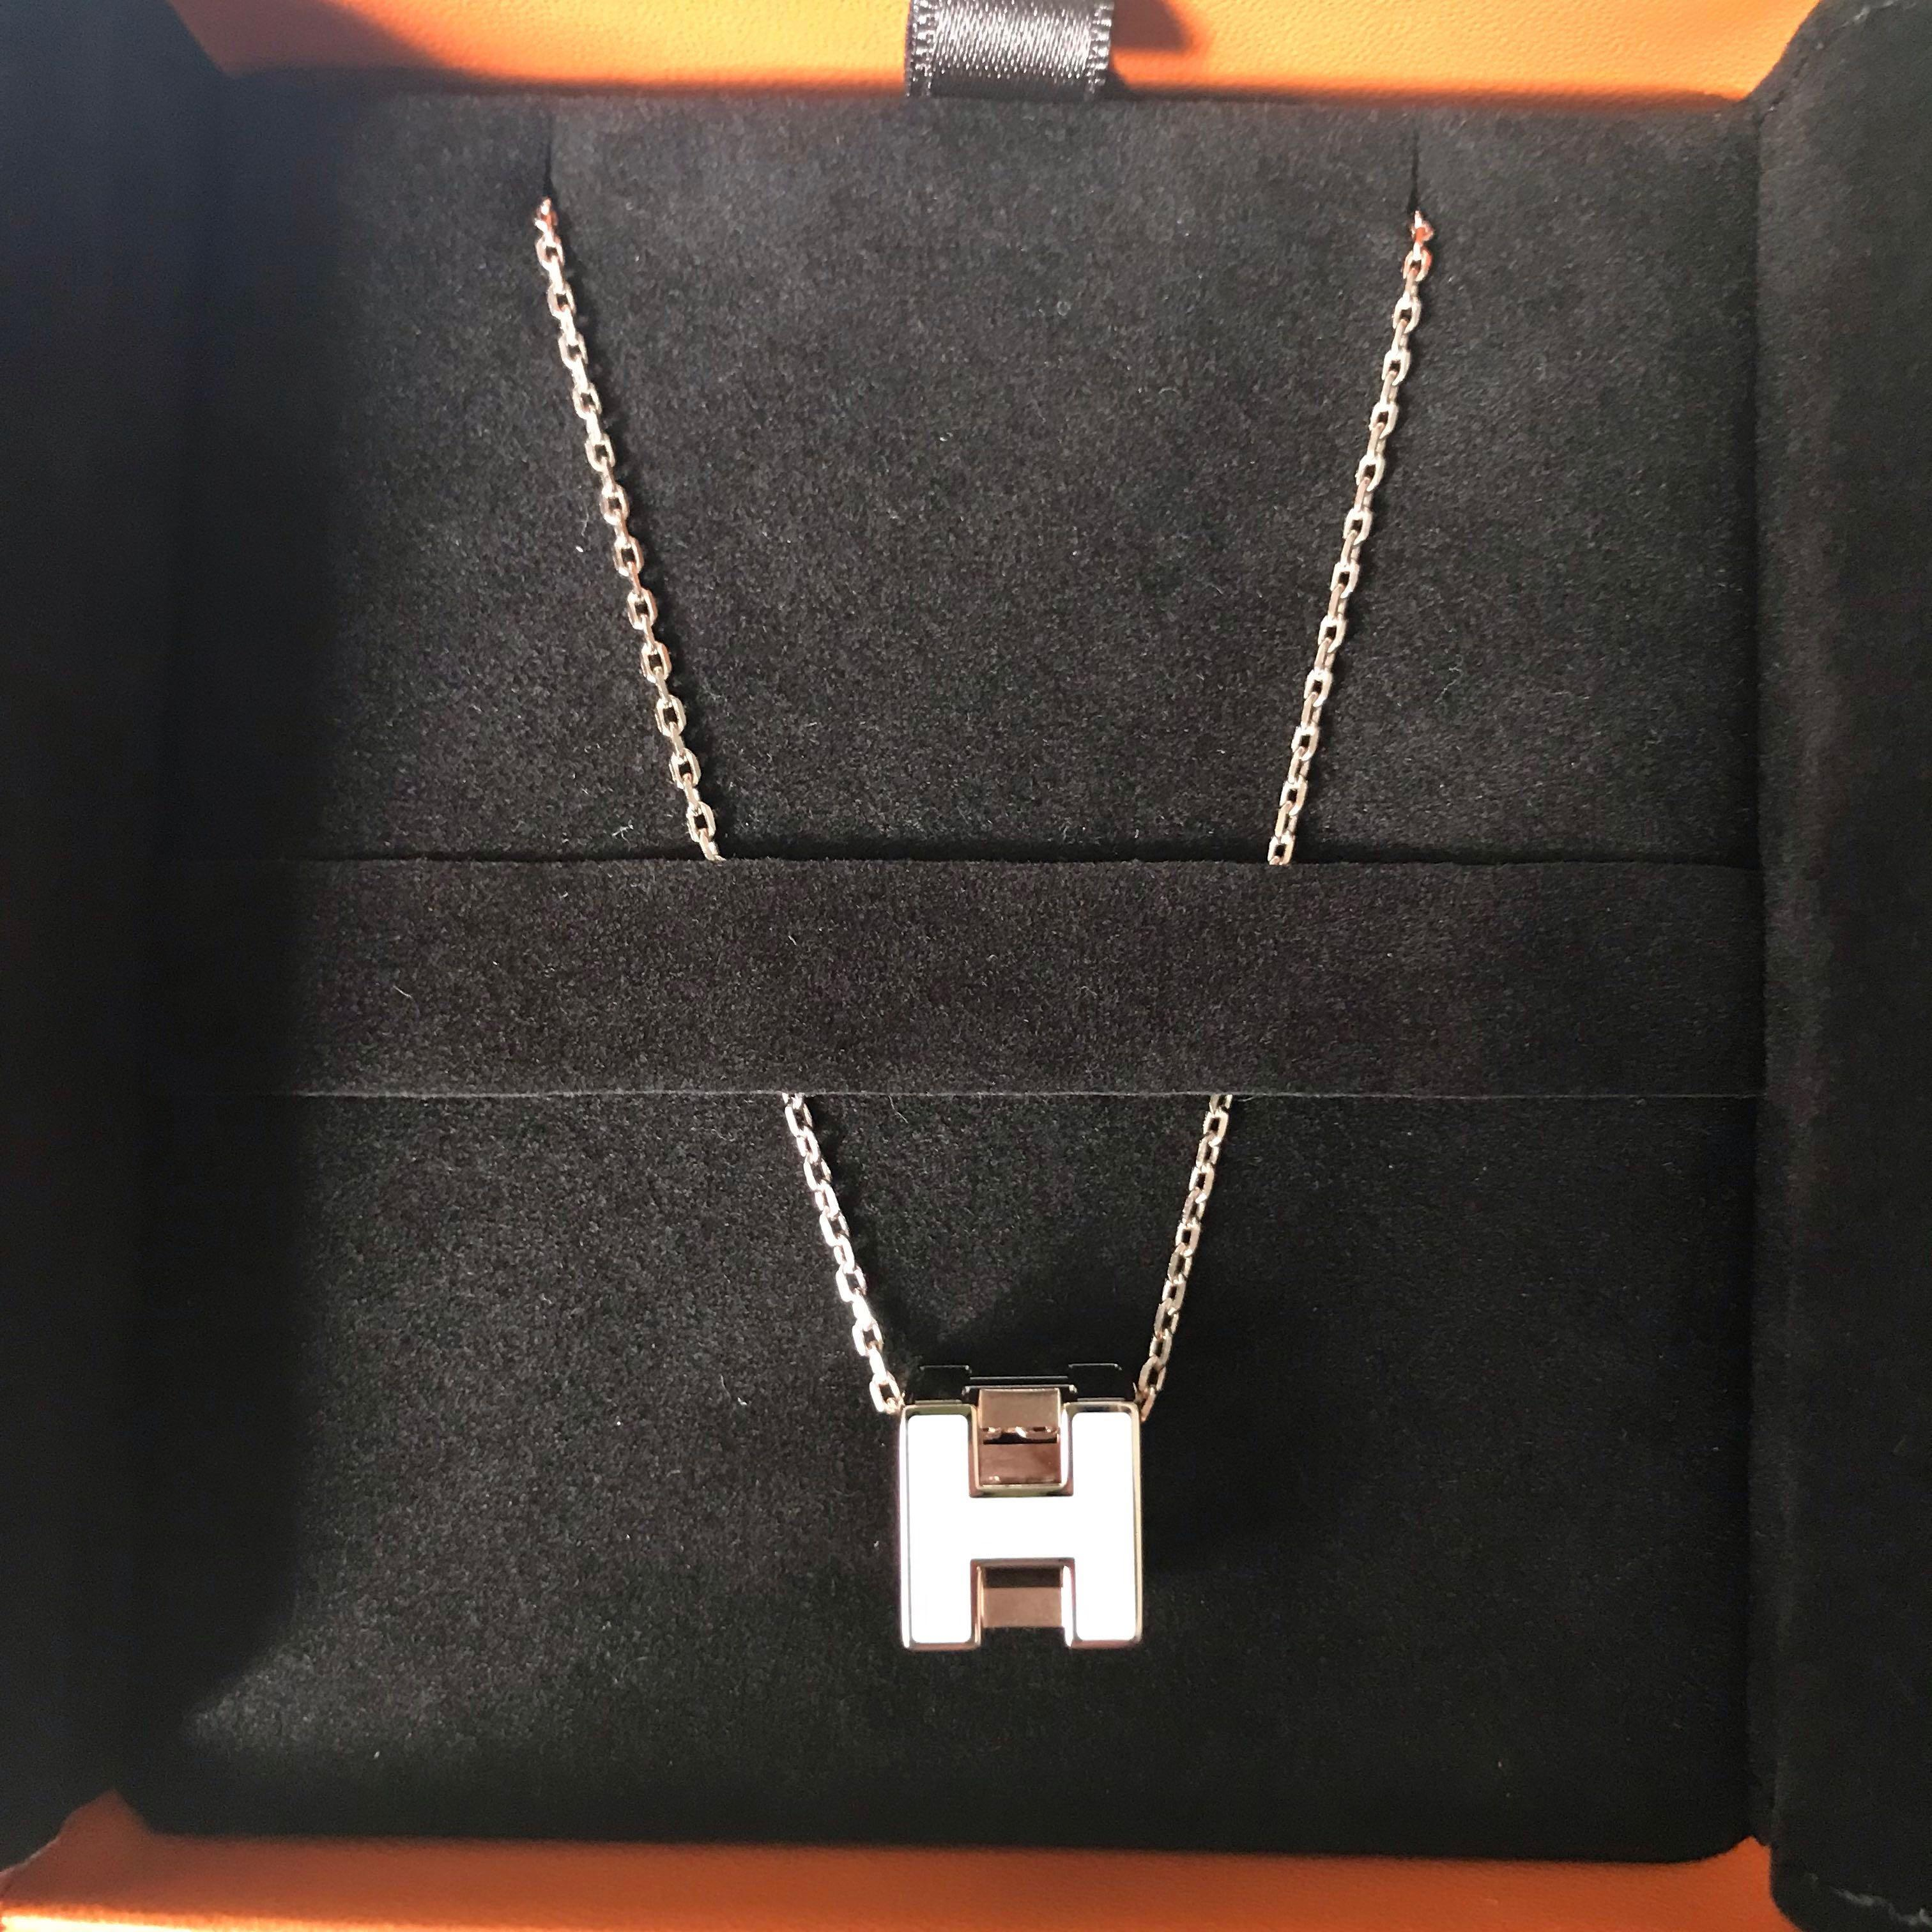 Brand New Hermes Cage H Necklace Womens Fashion Jewellery